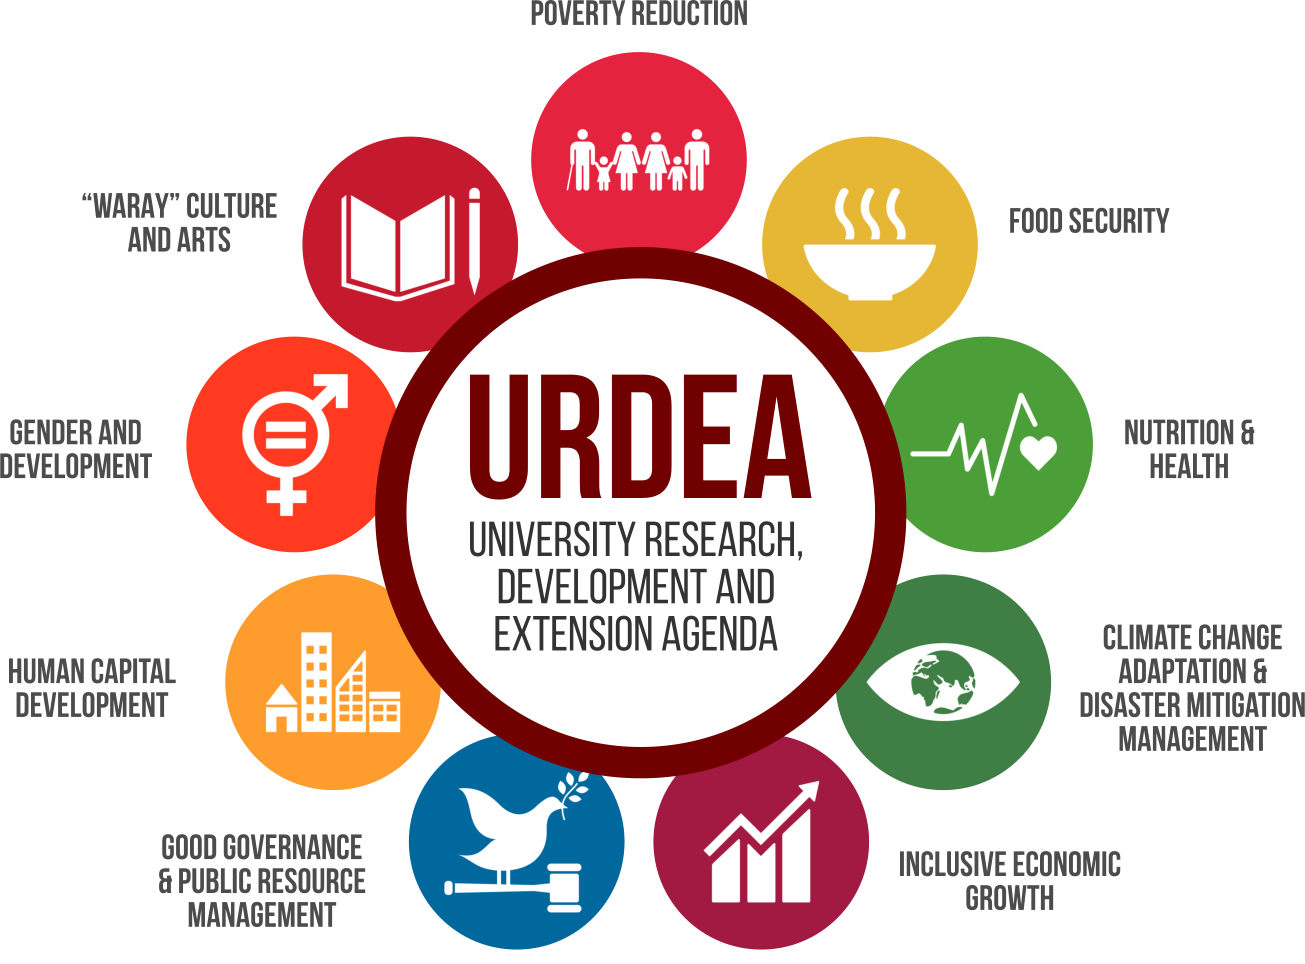 gendering the development agenda The high-level political forum on sustainable development is the central un platform for the follow-up and review of the 2030 agenda for sustainable development adopted at the united nations sustainable development summit on 25 september 2015.